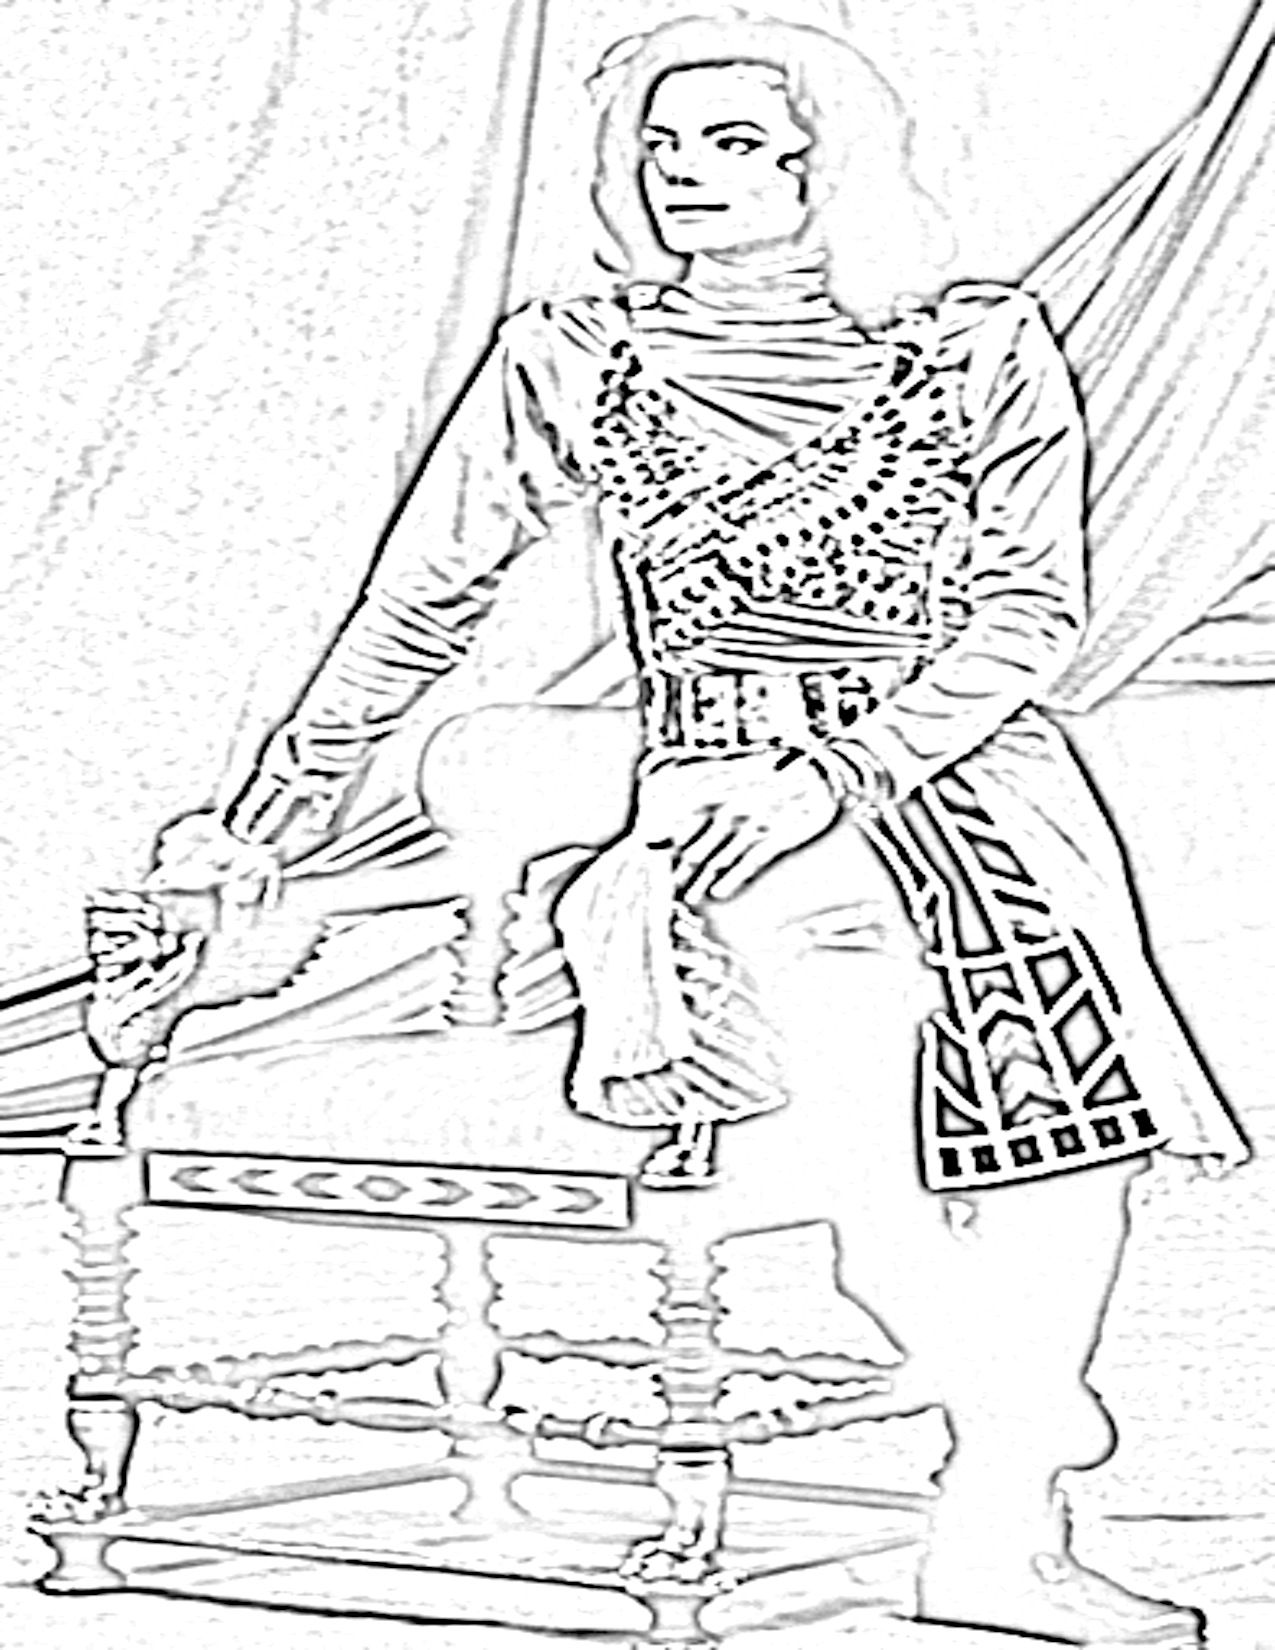 Michael Jackson Coloring Pages | Draw Coloring Pages | Michael ... | 1650x1275